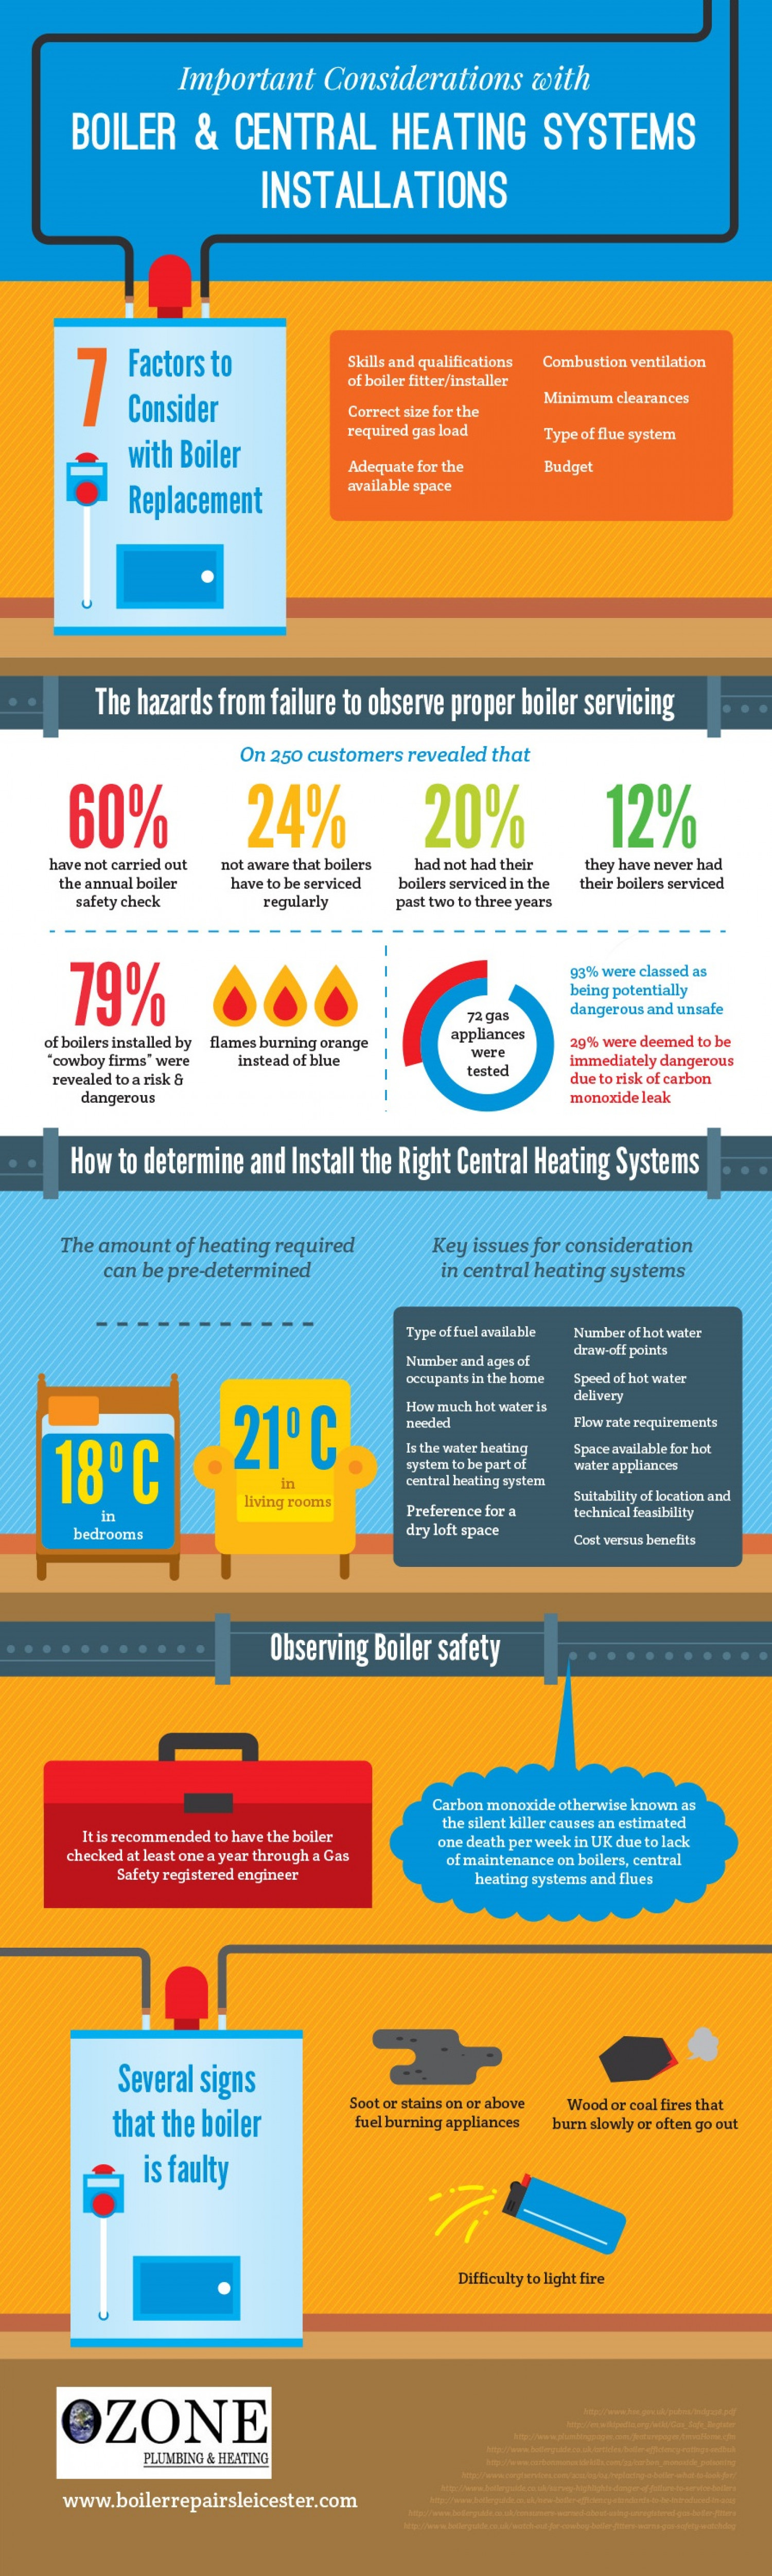 Important Considerations With Boiler and Central Heating Systems Installations Infographic